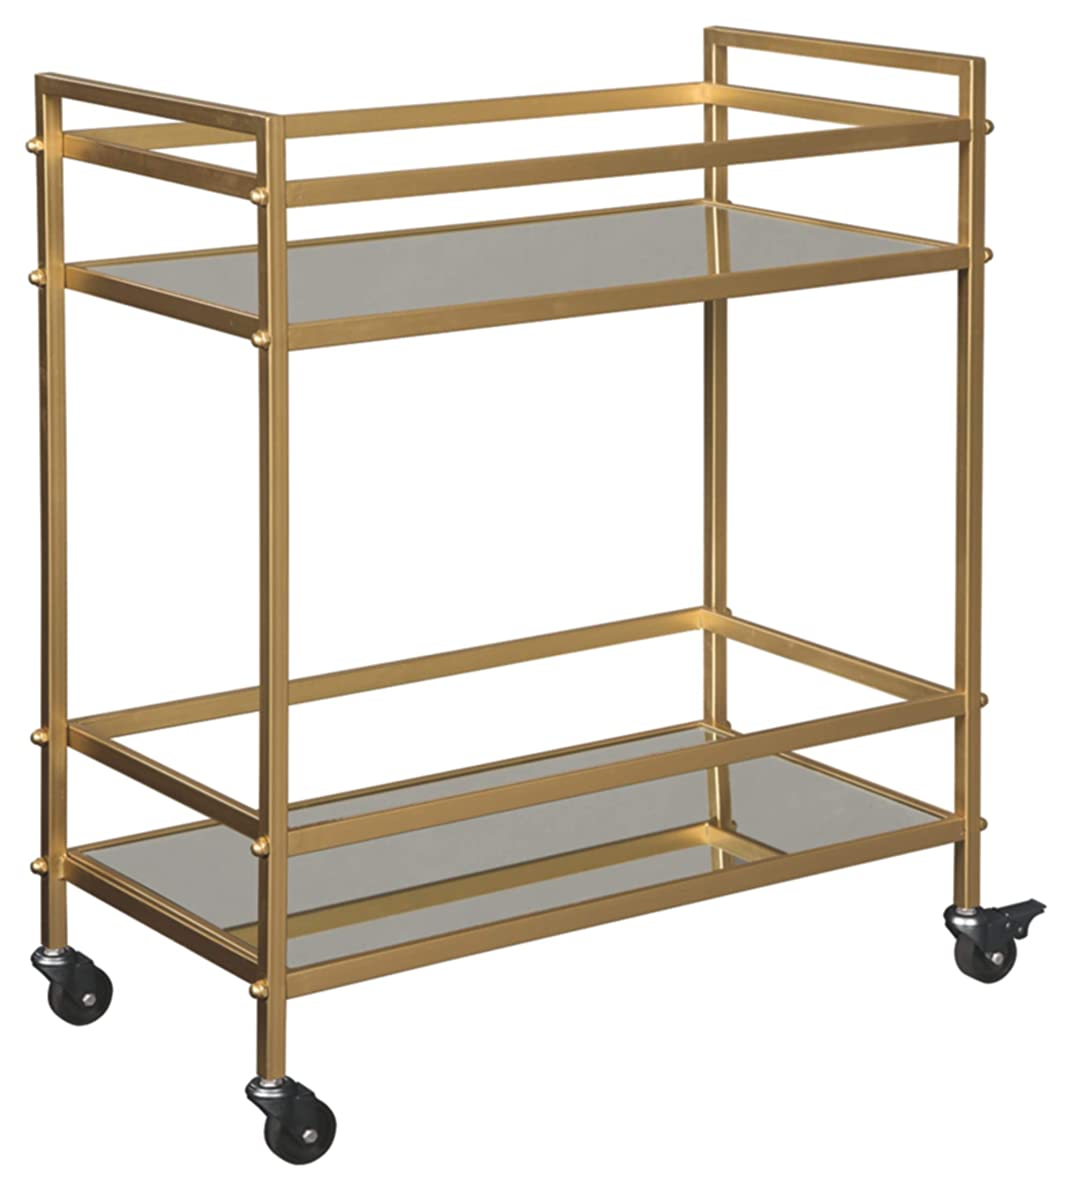 Ashley Furniture Signature Design - Kailman Bar Cart - Mid Century Style - 2 Shelves with Casters - Antique Gold Finish